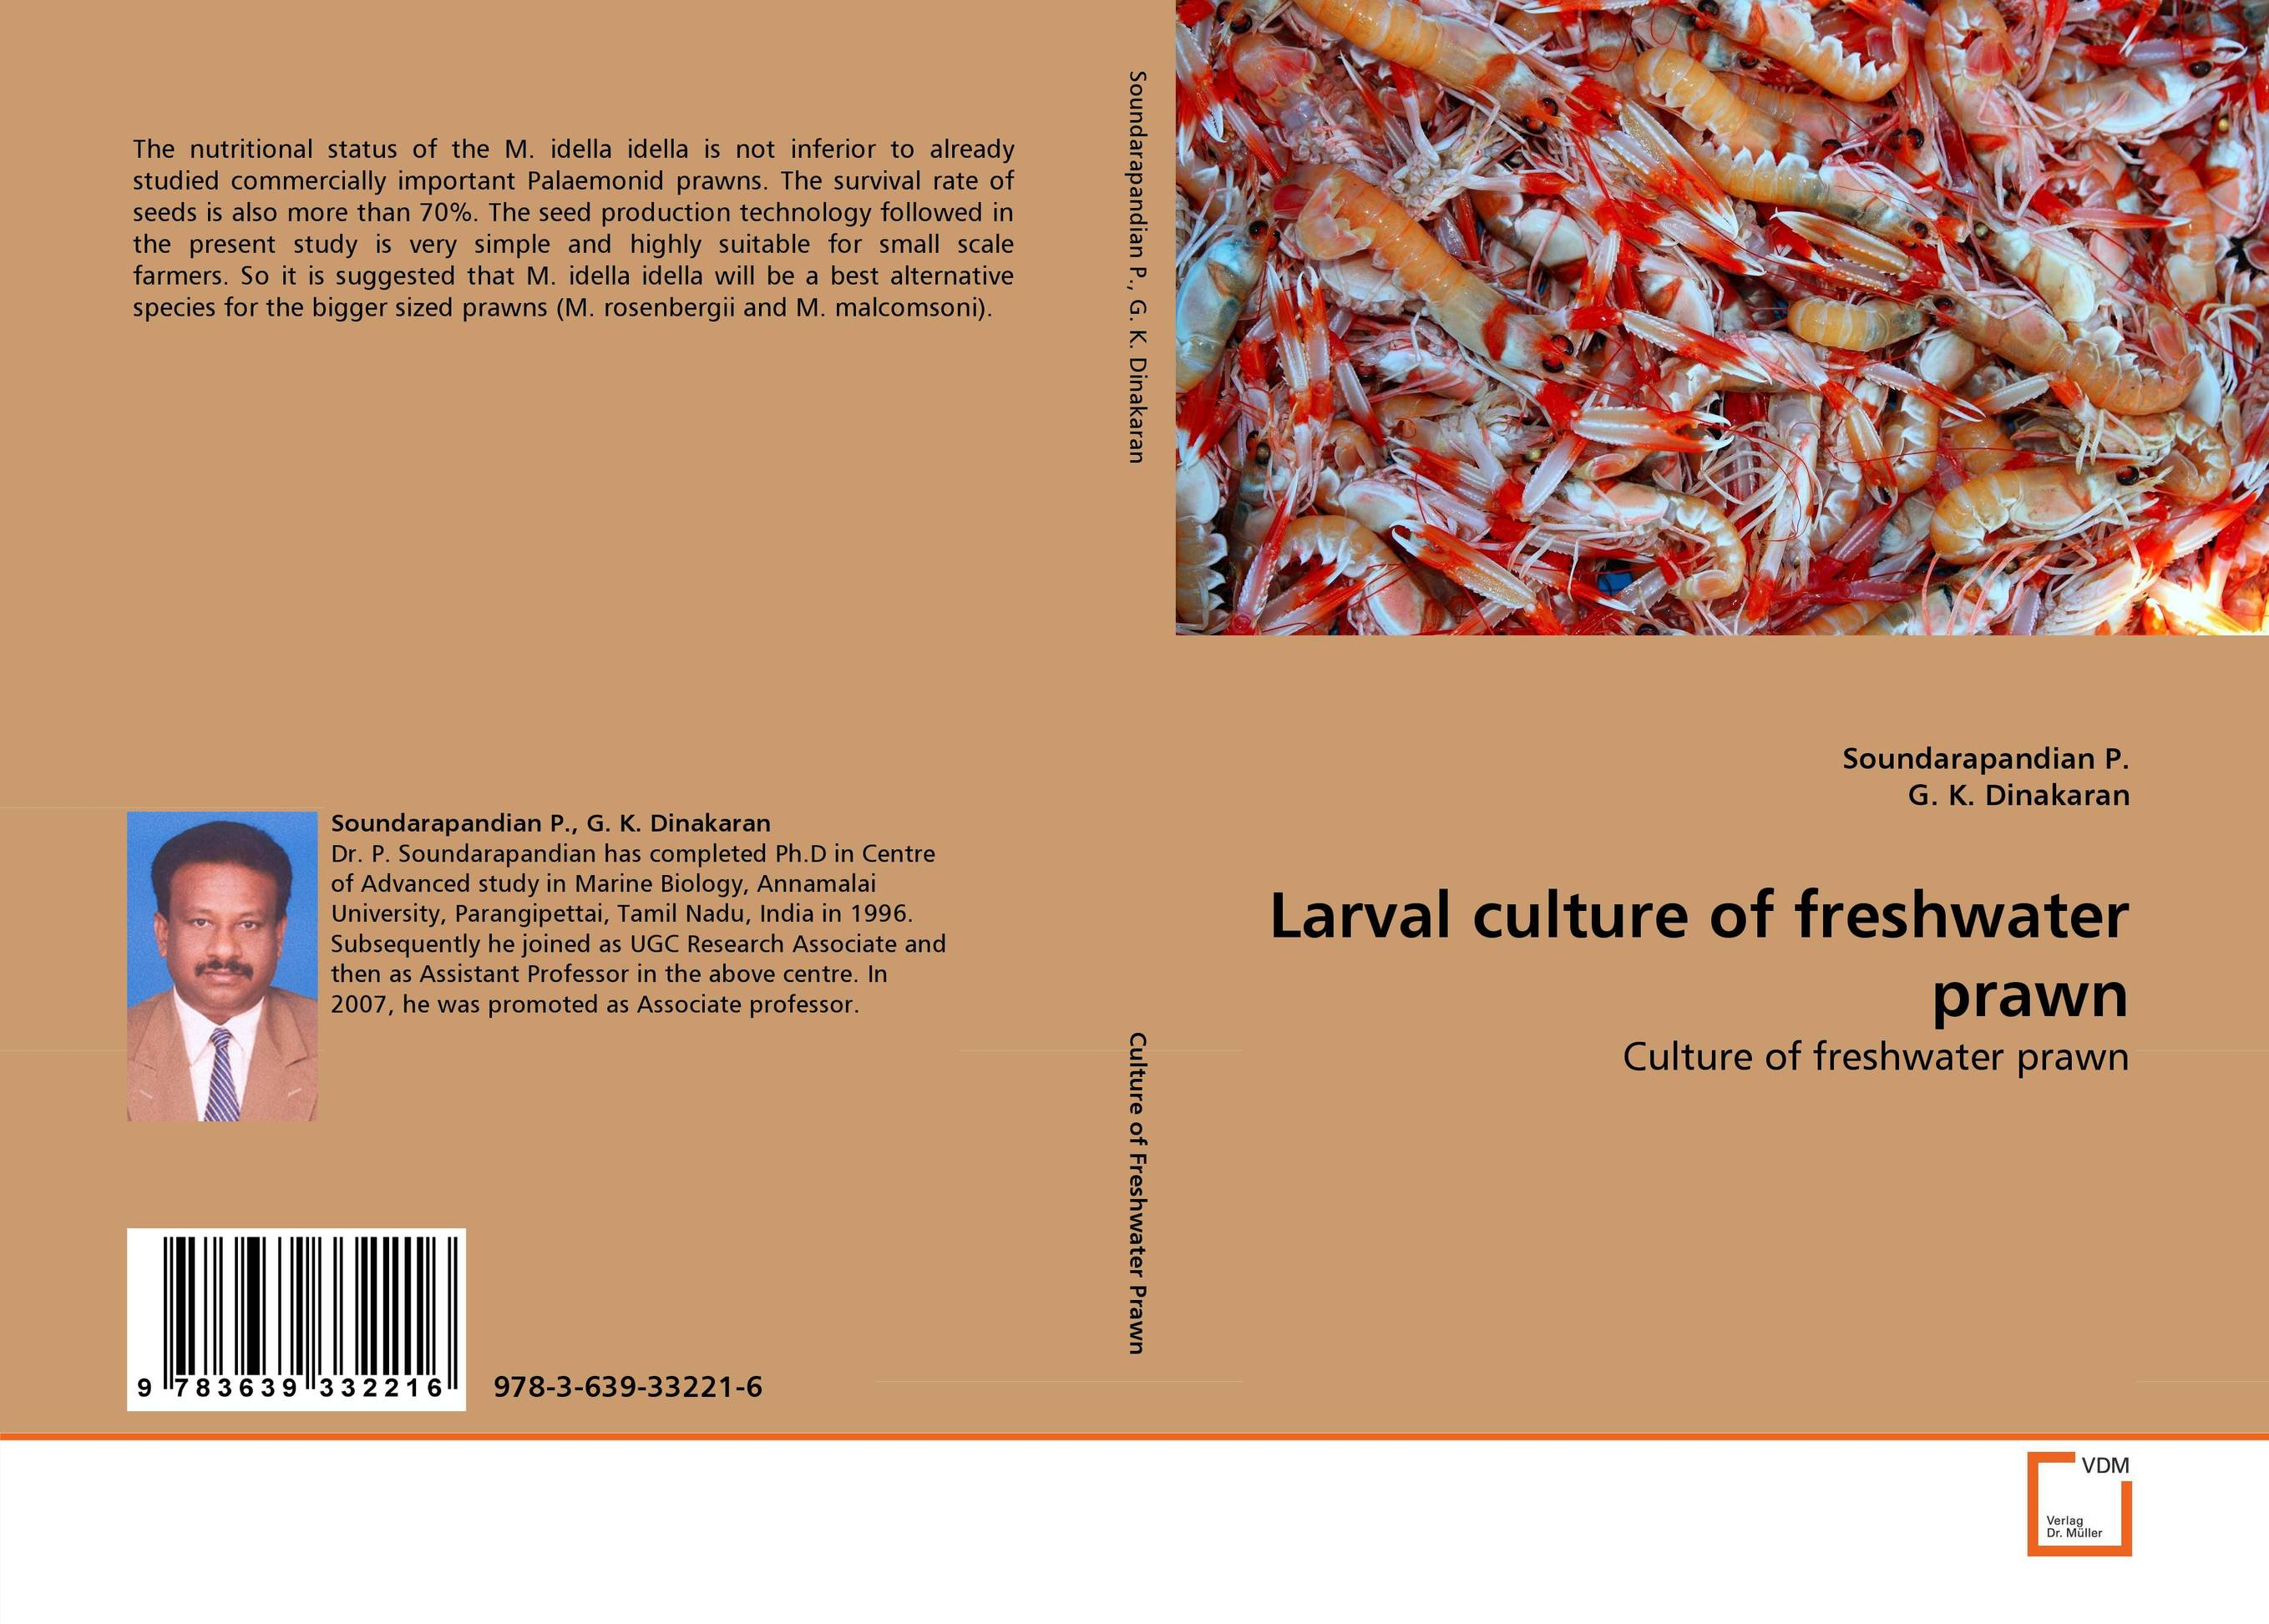 Larval culture of freshwater prawn microbial quality of freshwater prawn